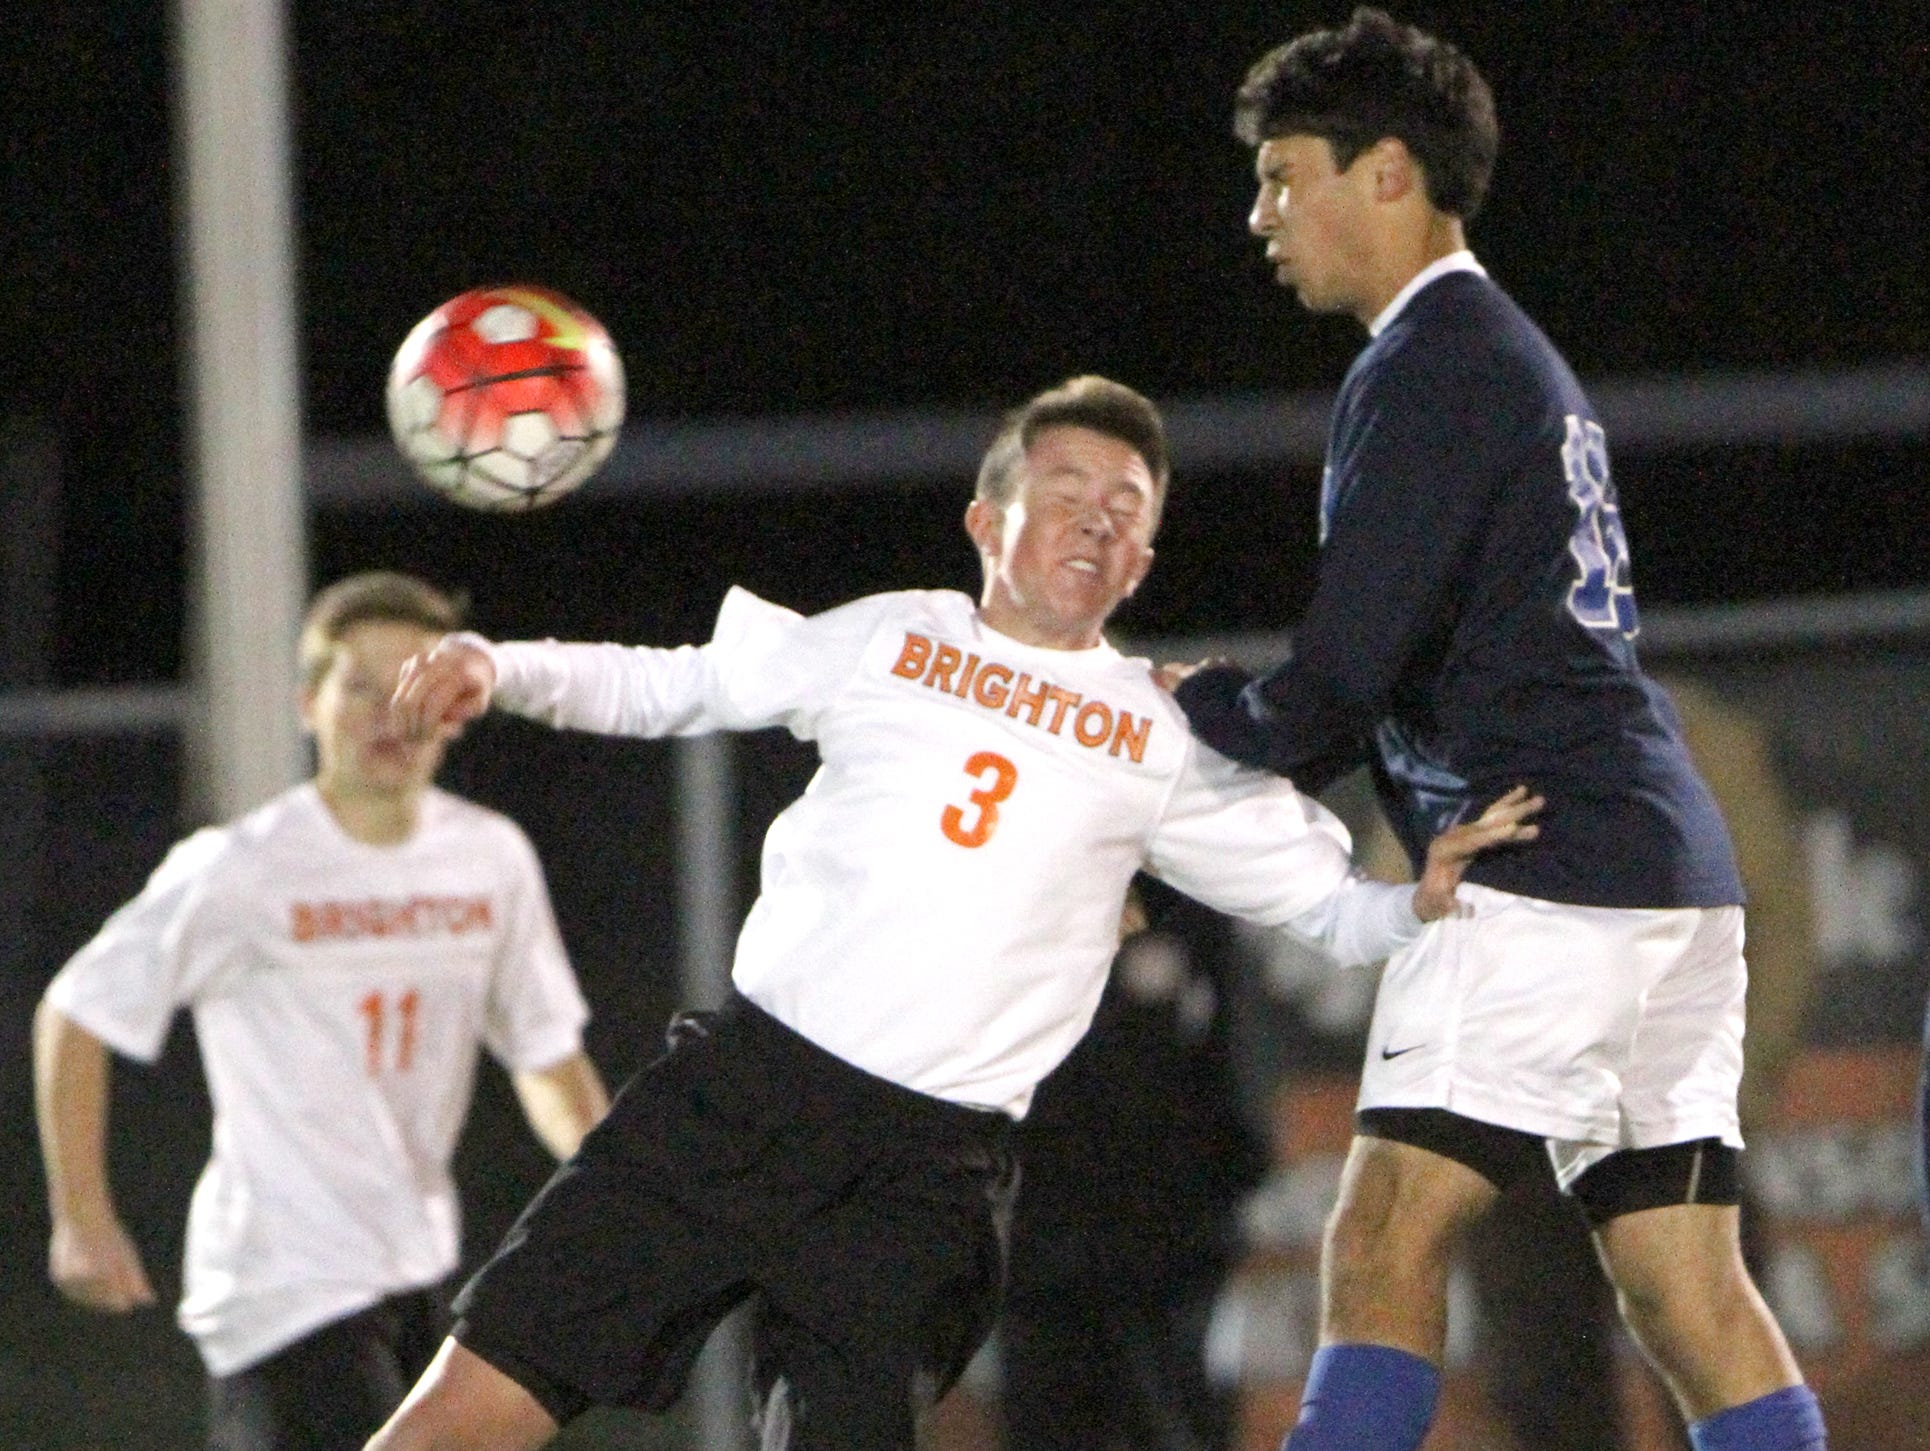 Brighton's Thomas Corrigan and his team suffered a 5-0 loss to Salem on Wednesday night. It was the Dogs' last regular-season game of 2015.